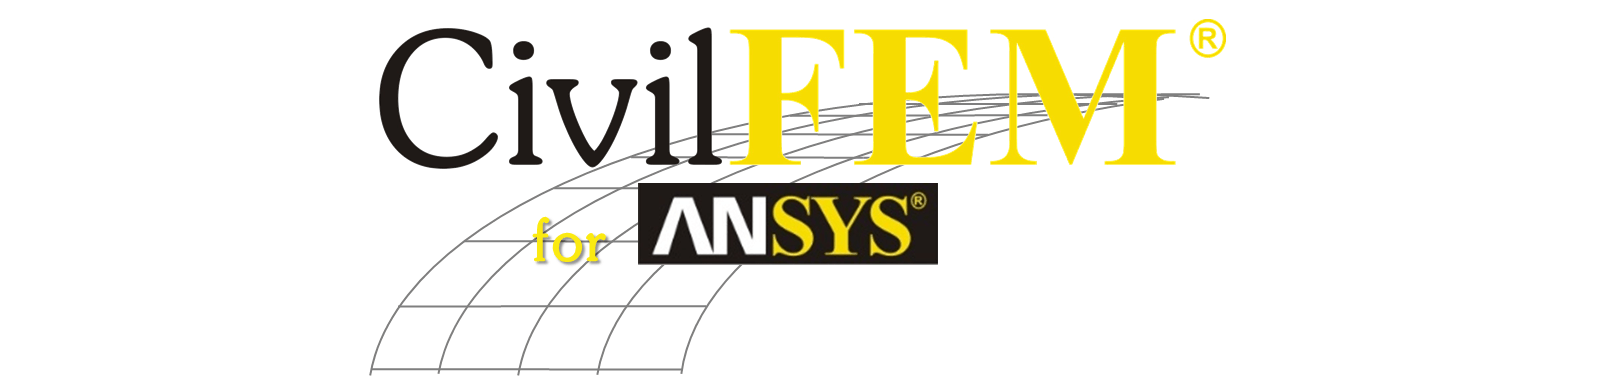 civilfem for ansys